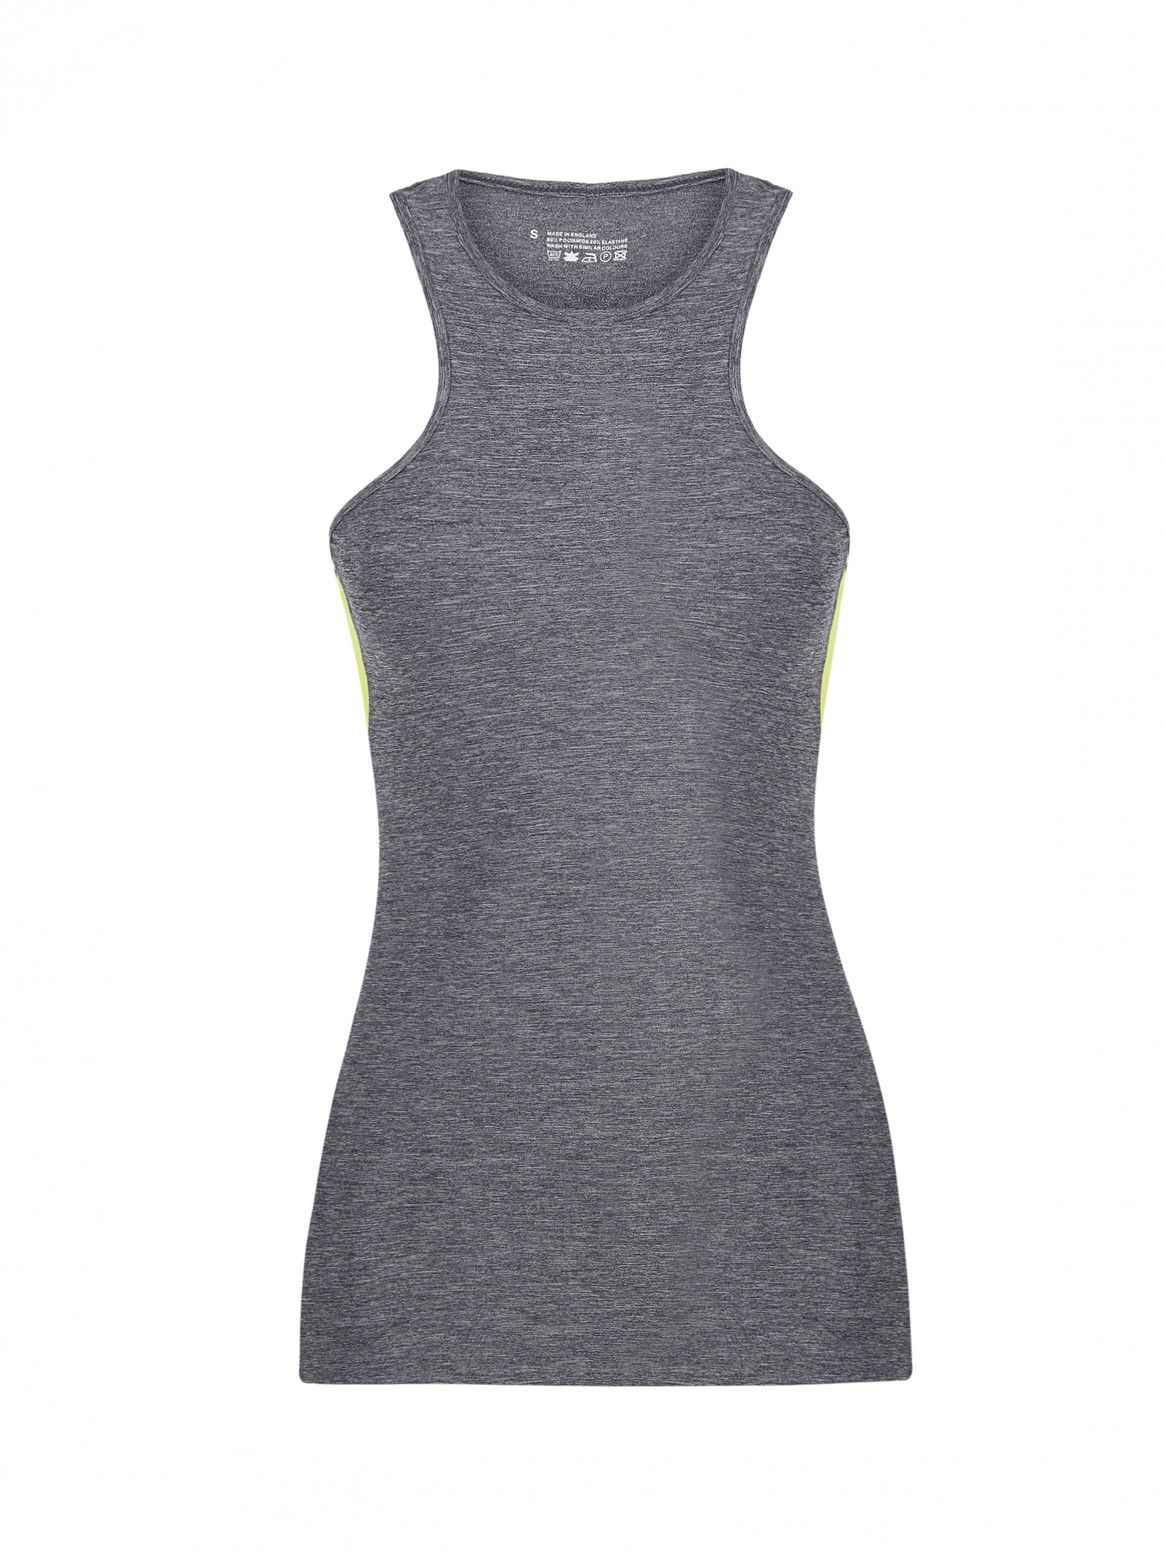 CHARLI COHEN grey and lime AERIAL TANK front